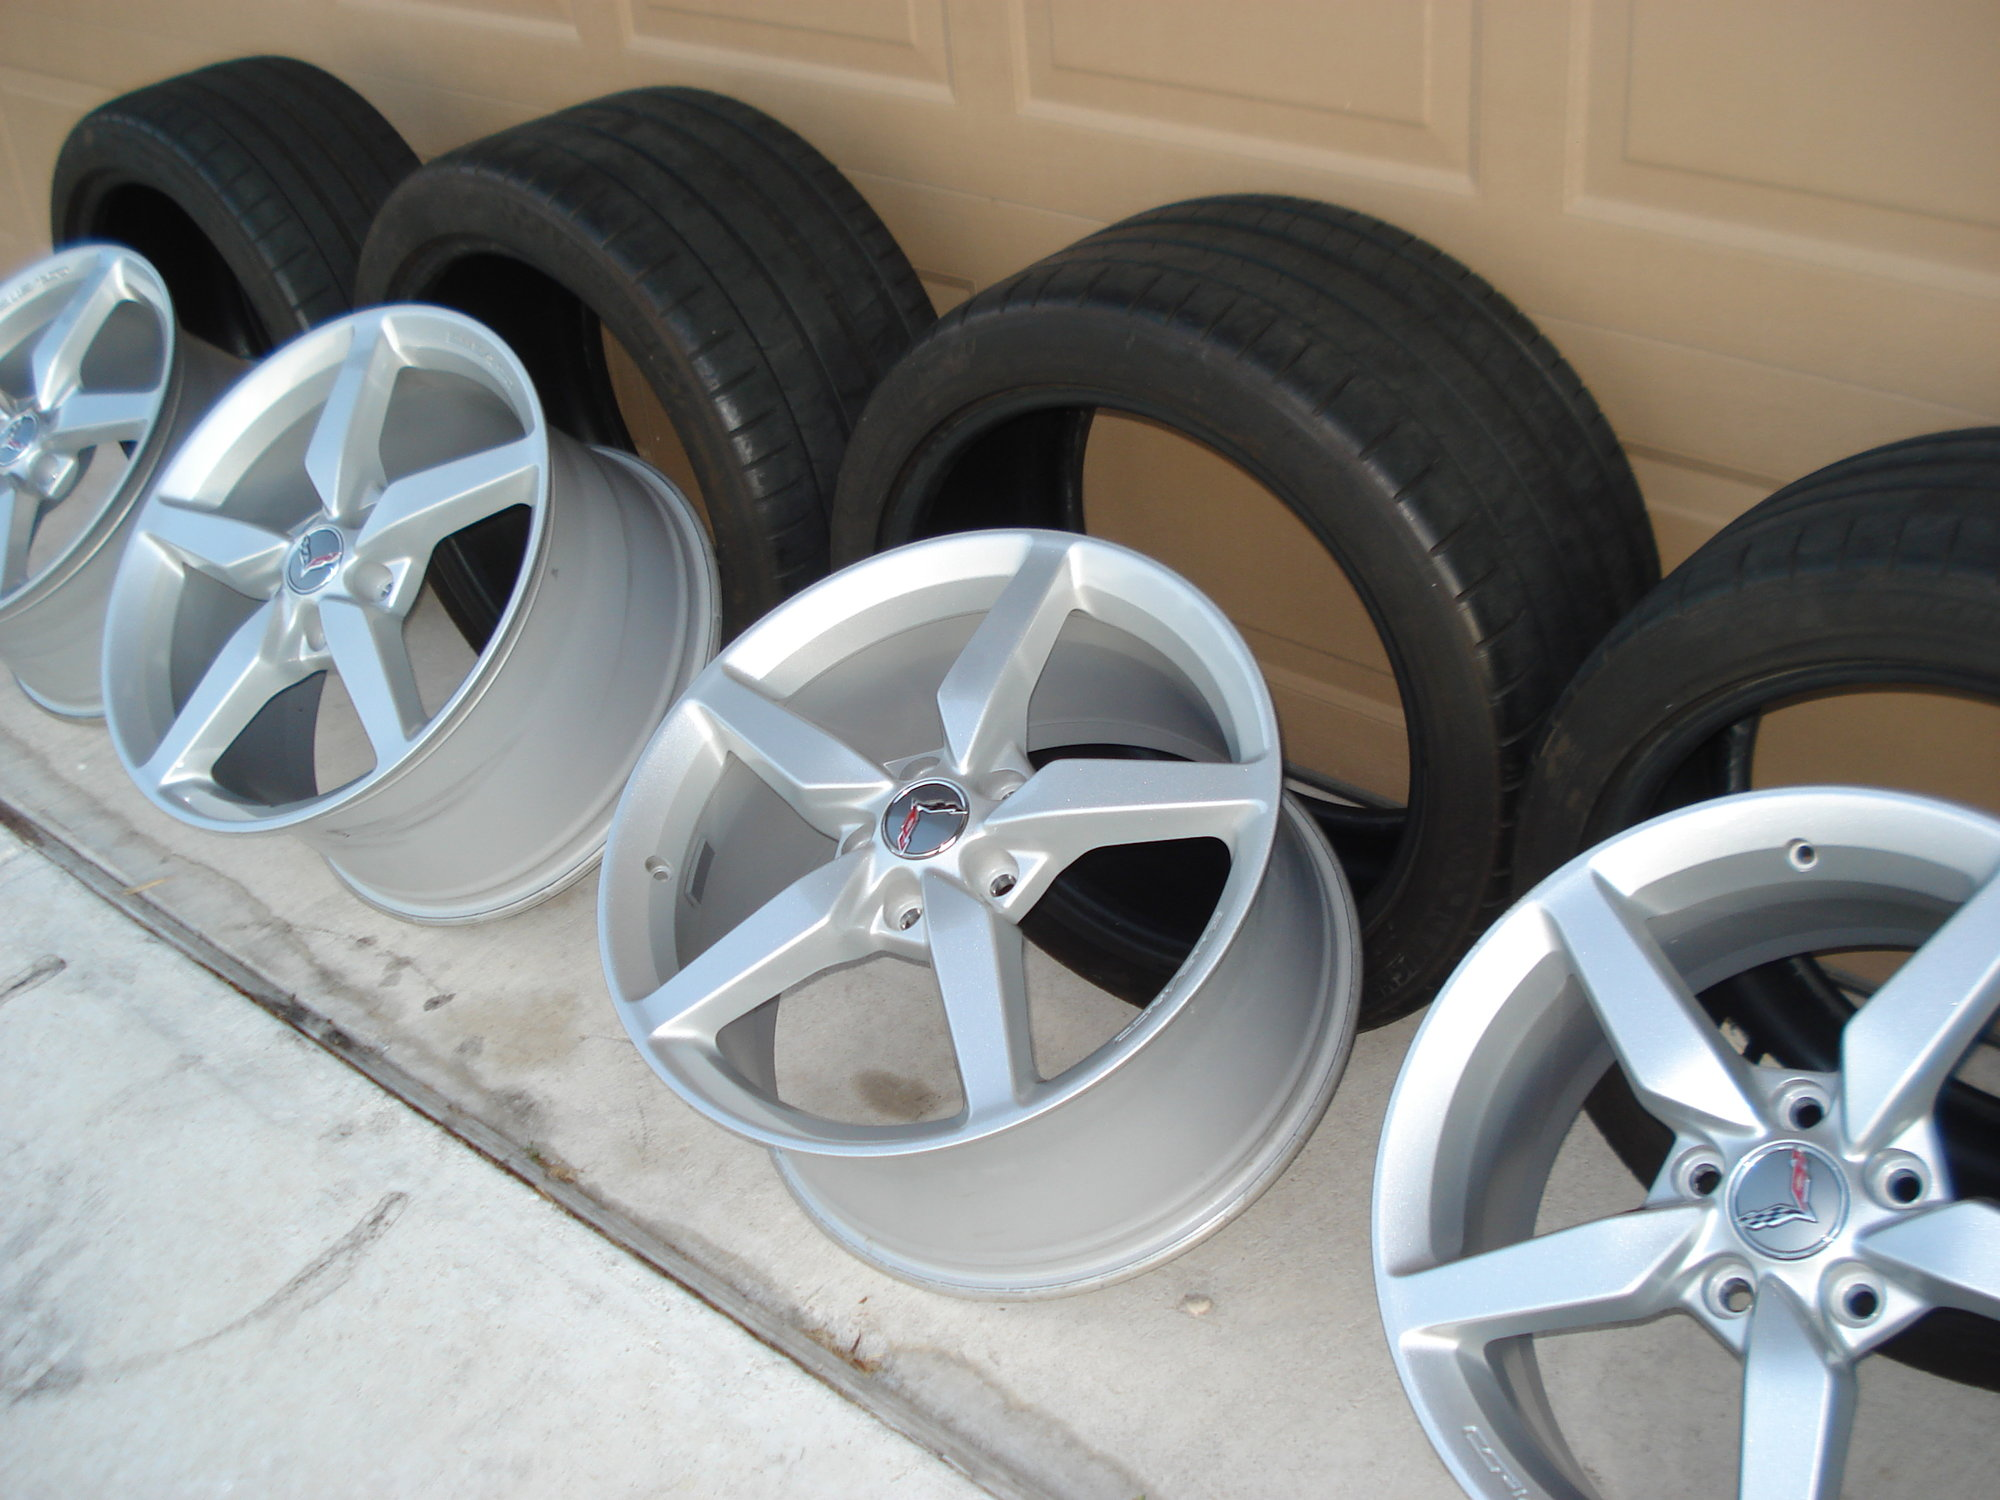 FS (For Sale) C7 wheels & tires (like new) tx